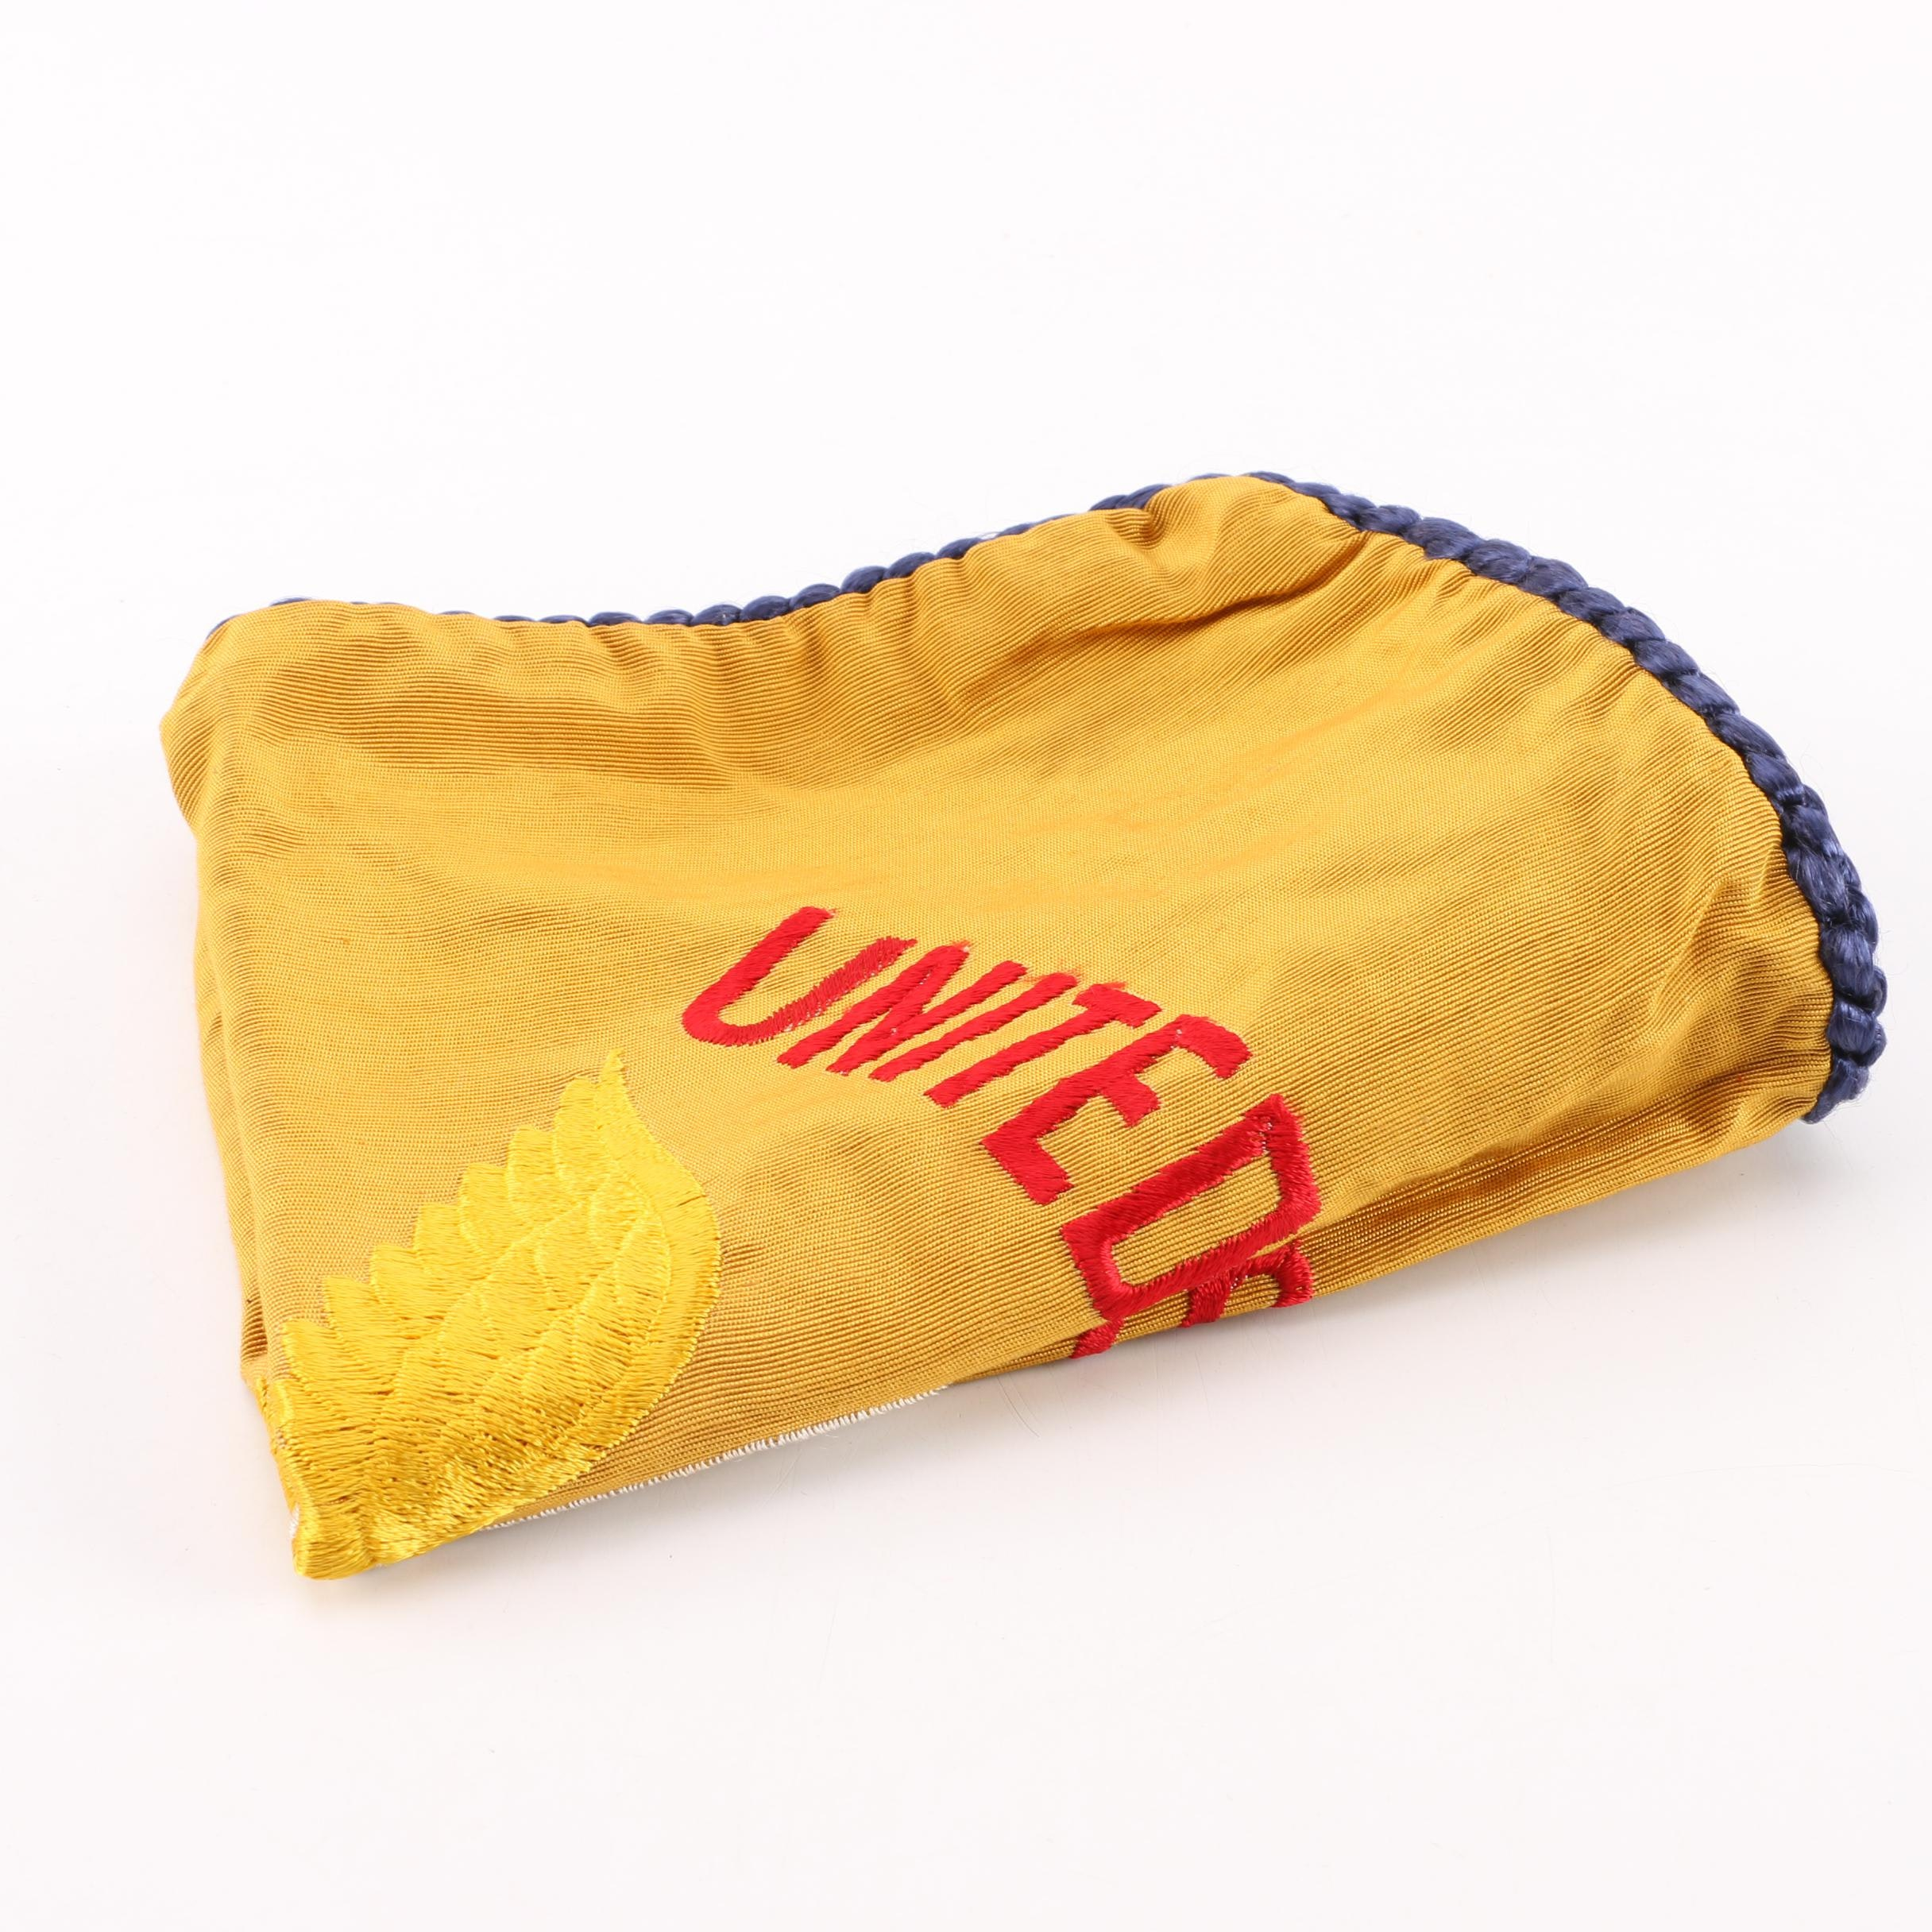 United States Air Force Pillow Cover